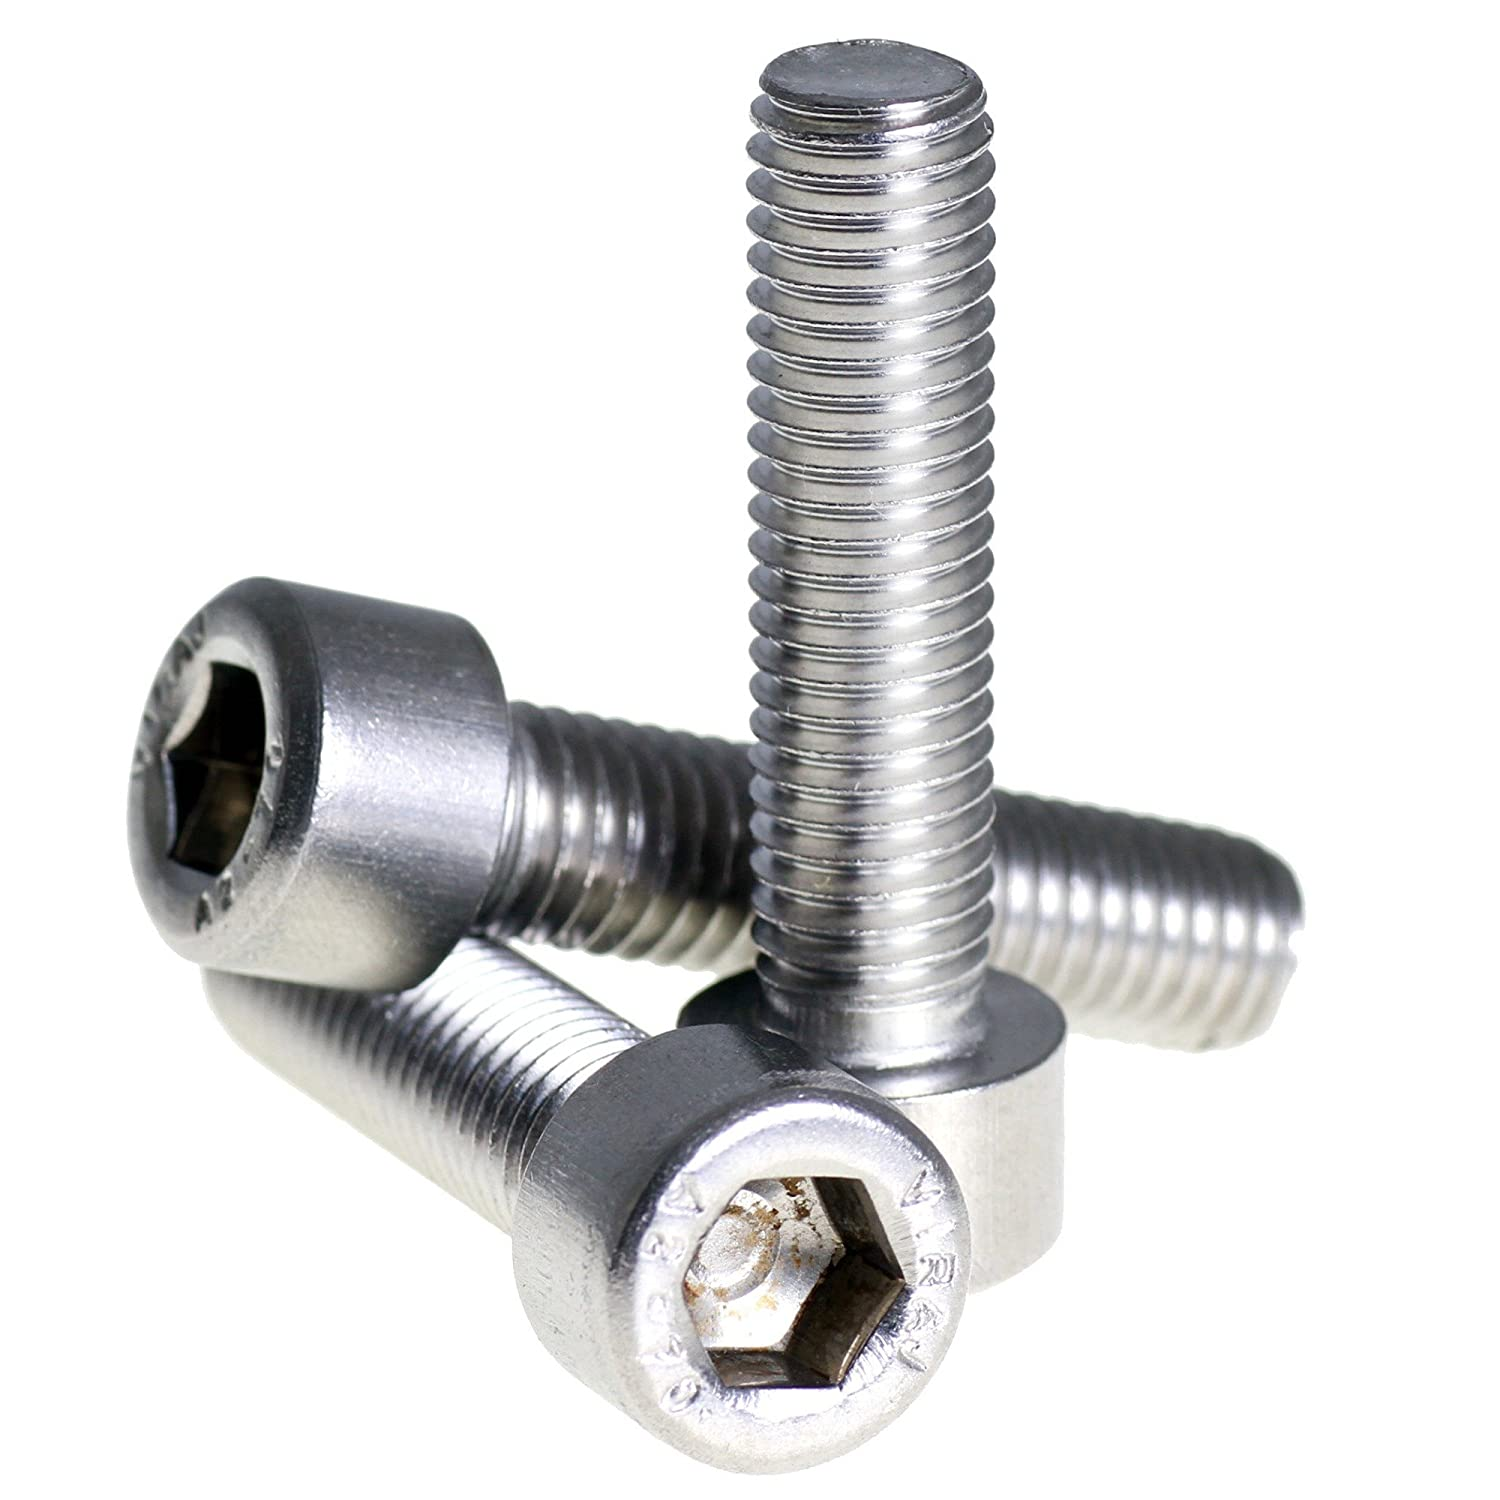 Bolt Base 2mm A2 Stainless Steel Allen Bolt Socket Cap Screw Hex Head M2 X 6-50